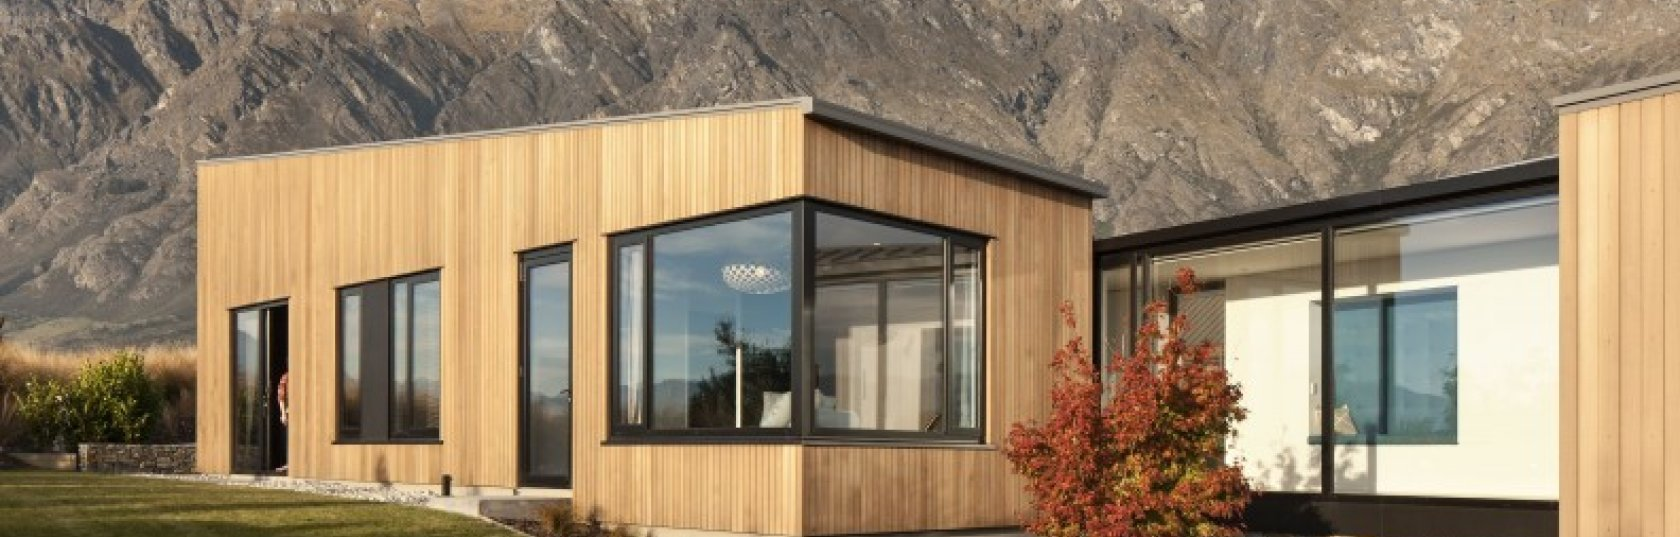 Nordic style: a monumental leap for cedar cladding